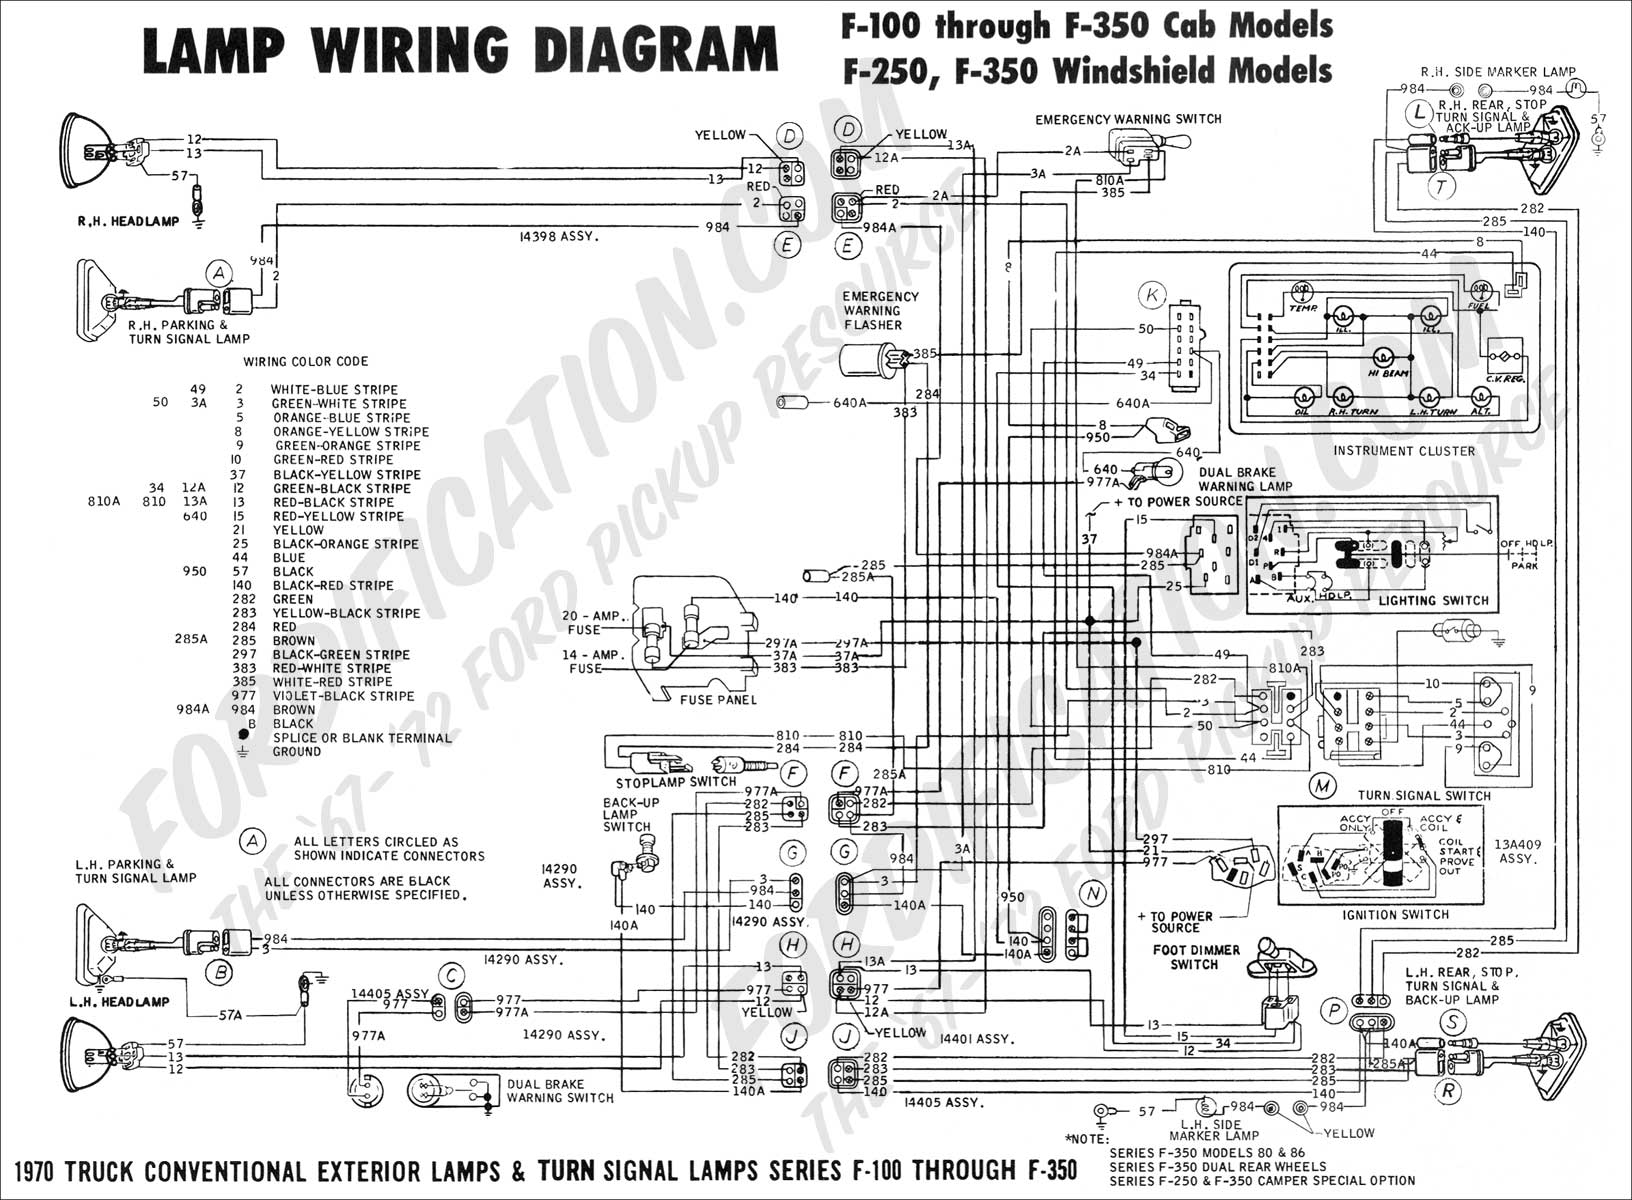 wiring diagram_70ext lights01?resize=665%2C489 wiring harness diagram for 4610 ford tractor the wiring diagram ford wiring harness diagrams at edmiracle.co